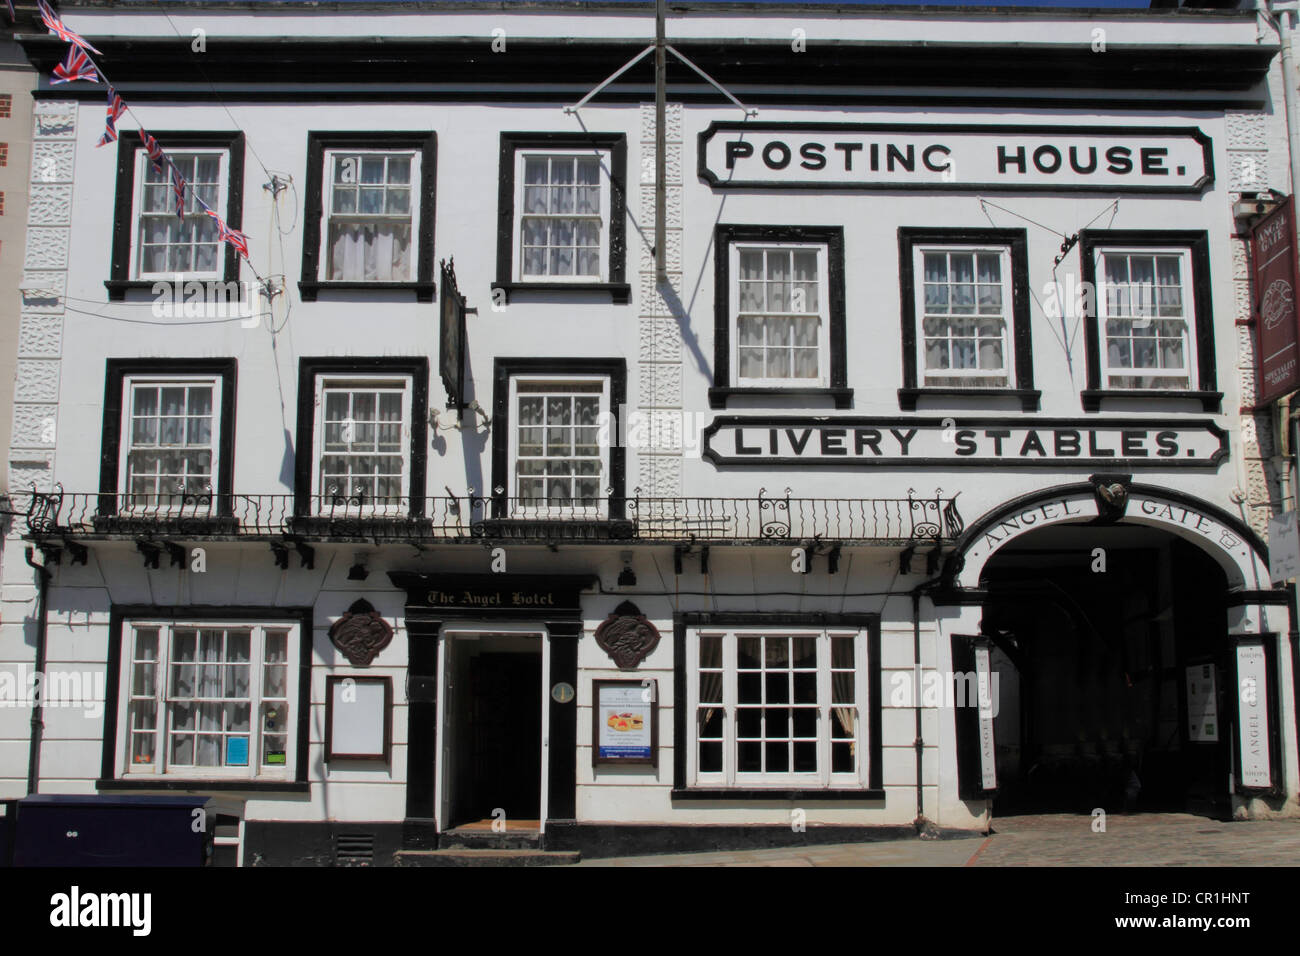 England Surrey Guildford high street Posting house Inn, Angel hotel - Stock Image